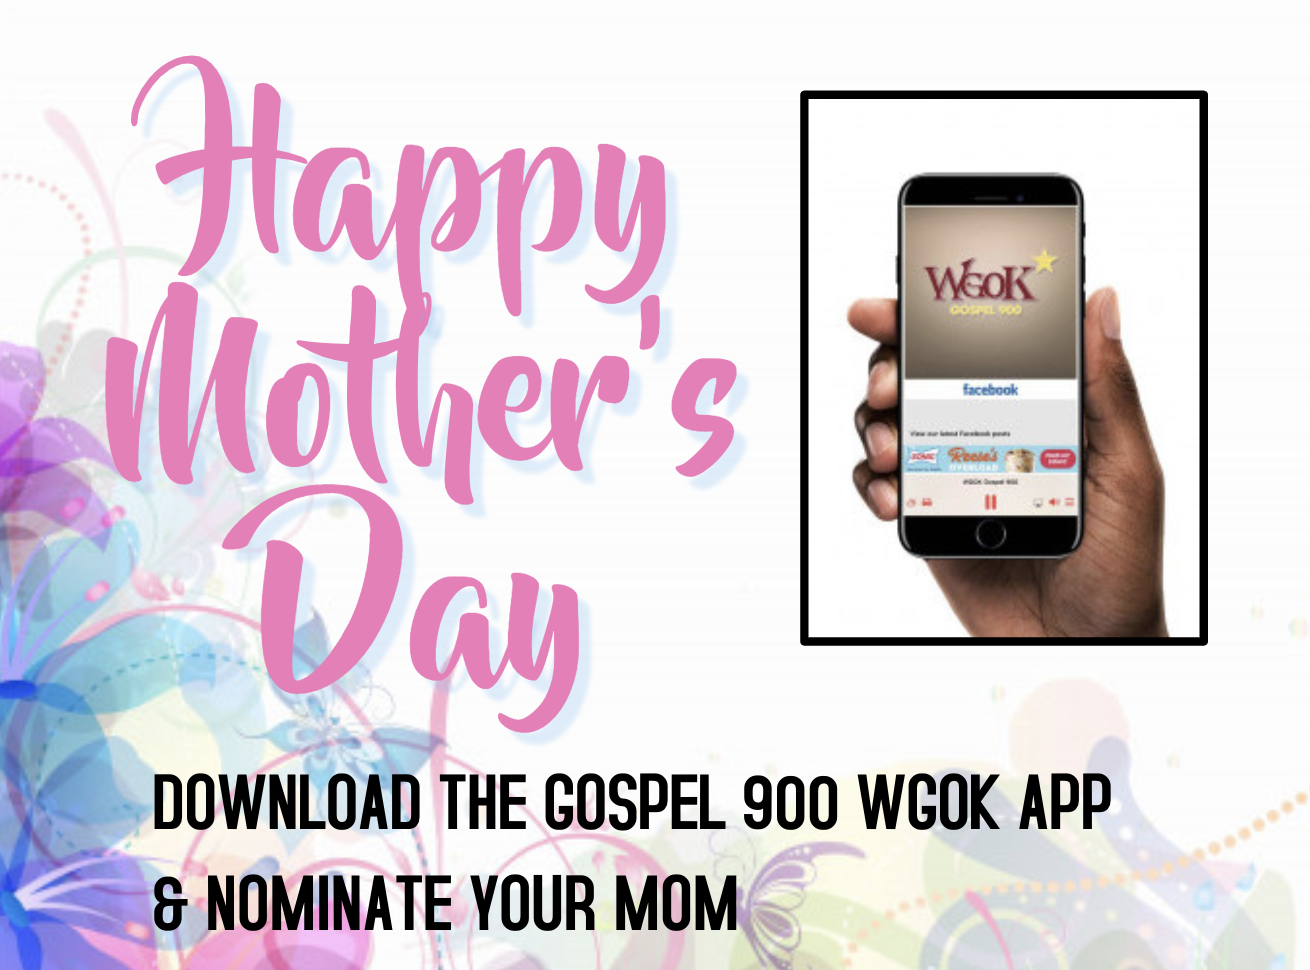 WIN a $100 Winn Dixie Gift Card for Mom! Happy Mother's Day